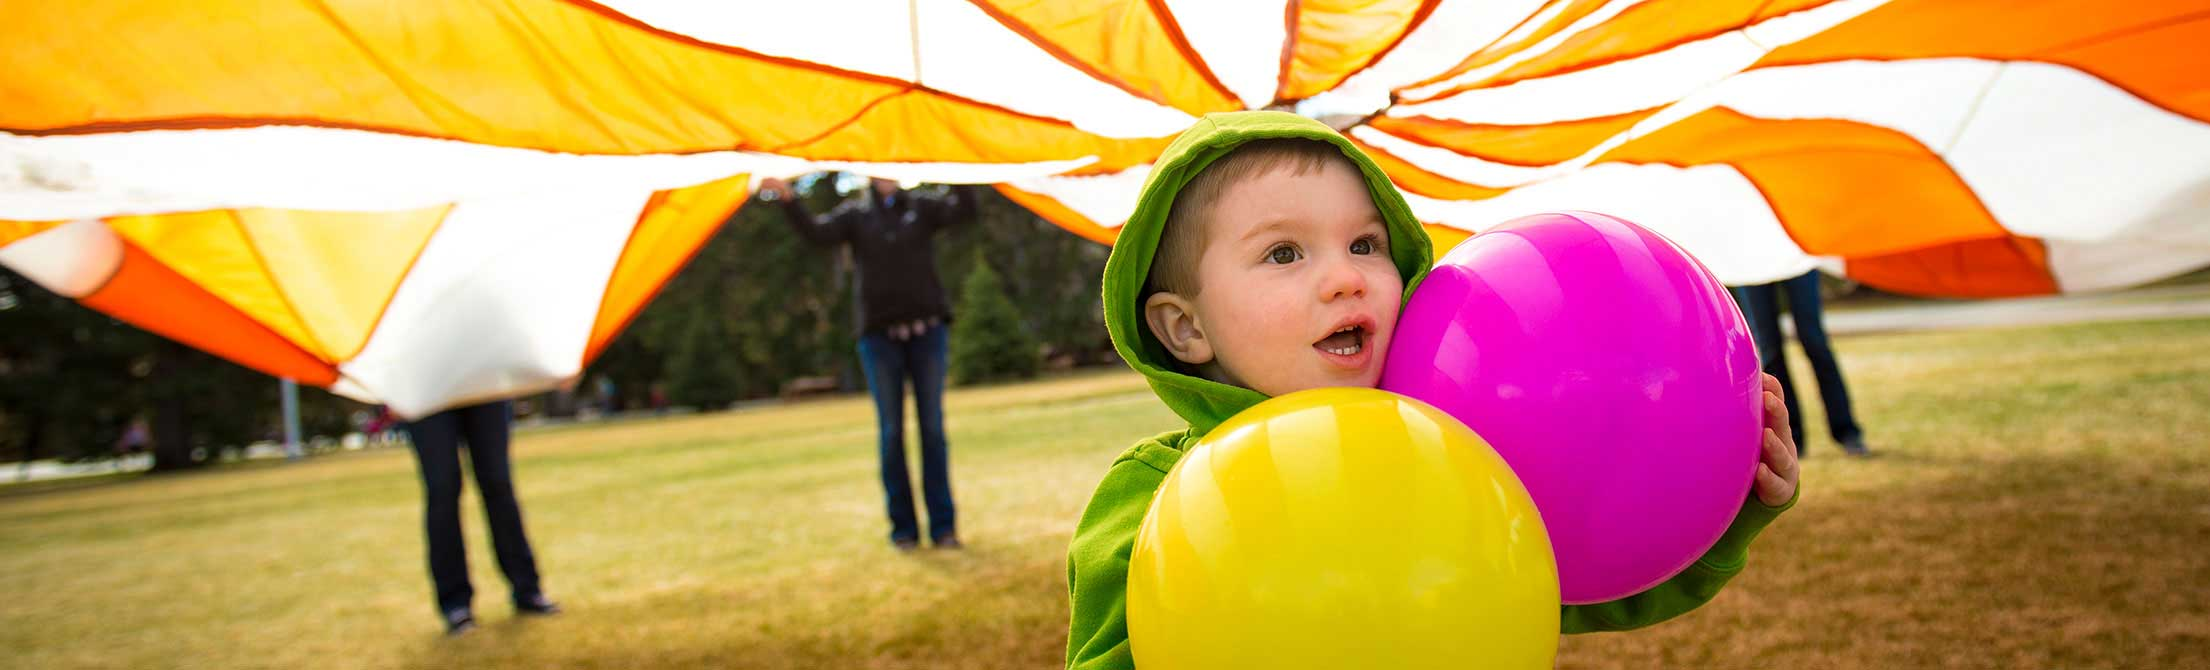 Child with Beach Balls Under a Large Parachute